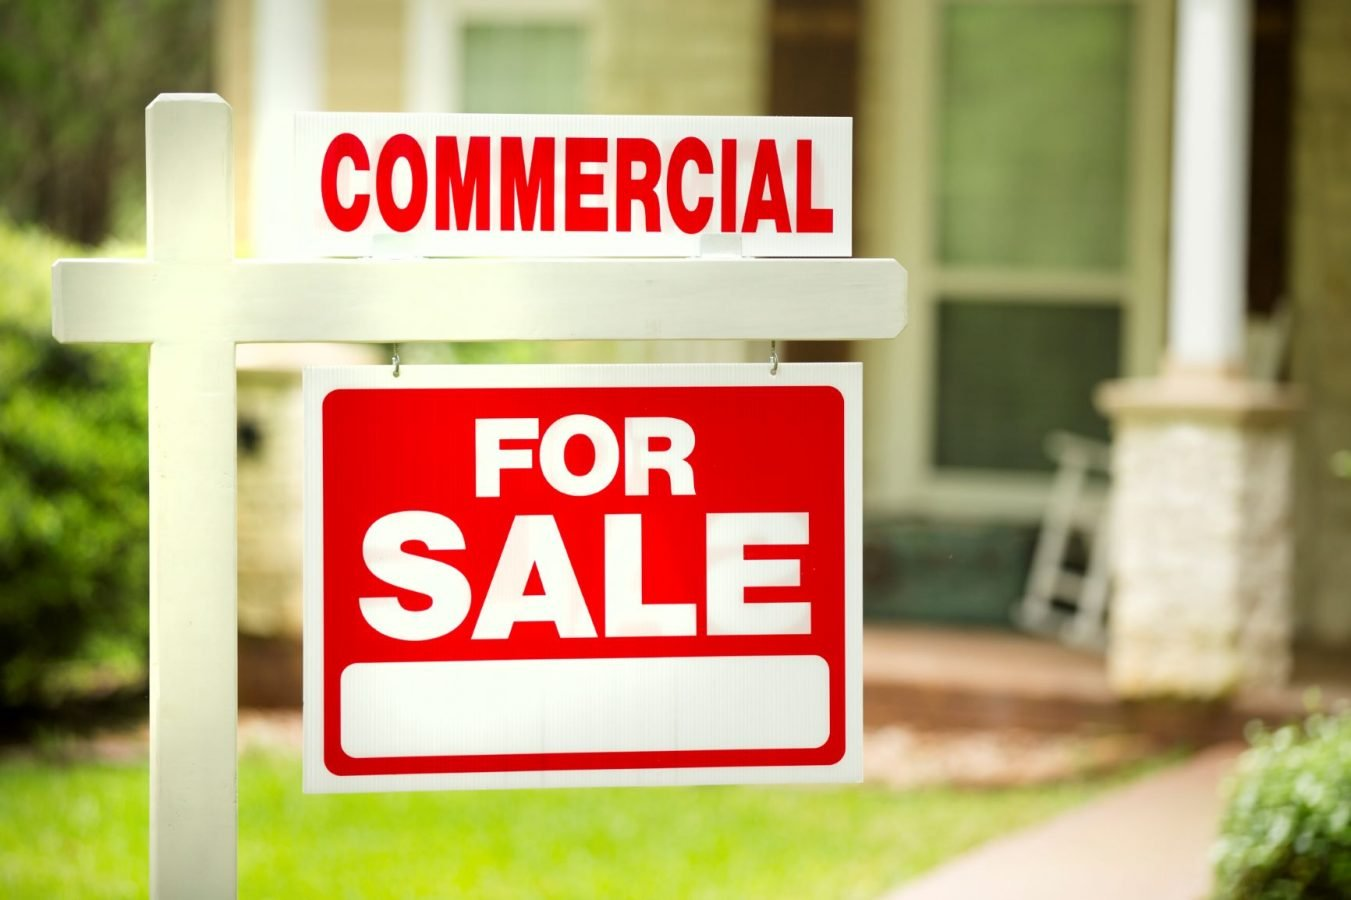 Commercial for sale sign